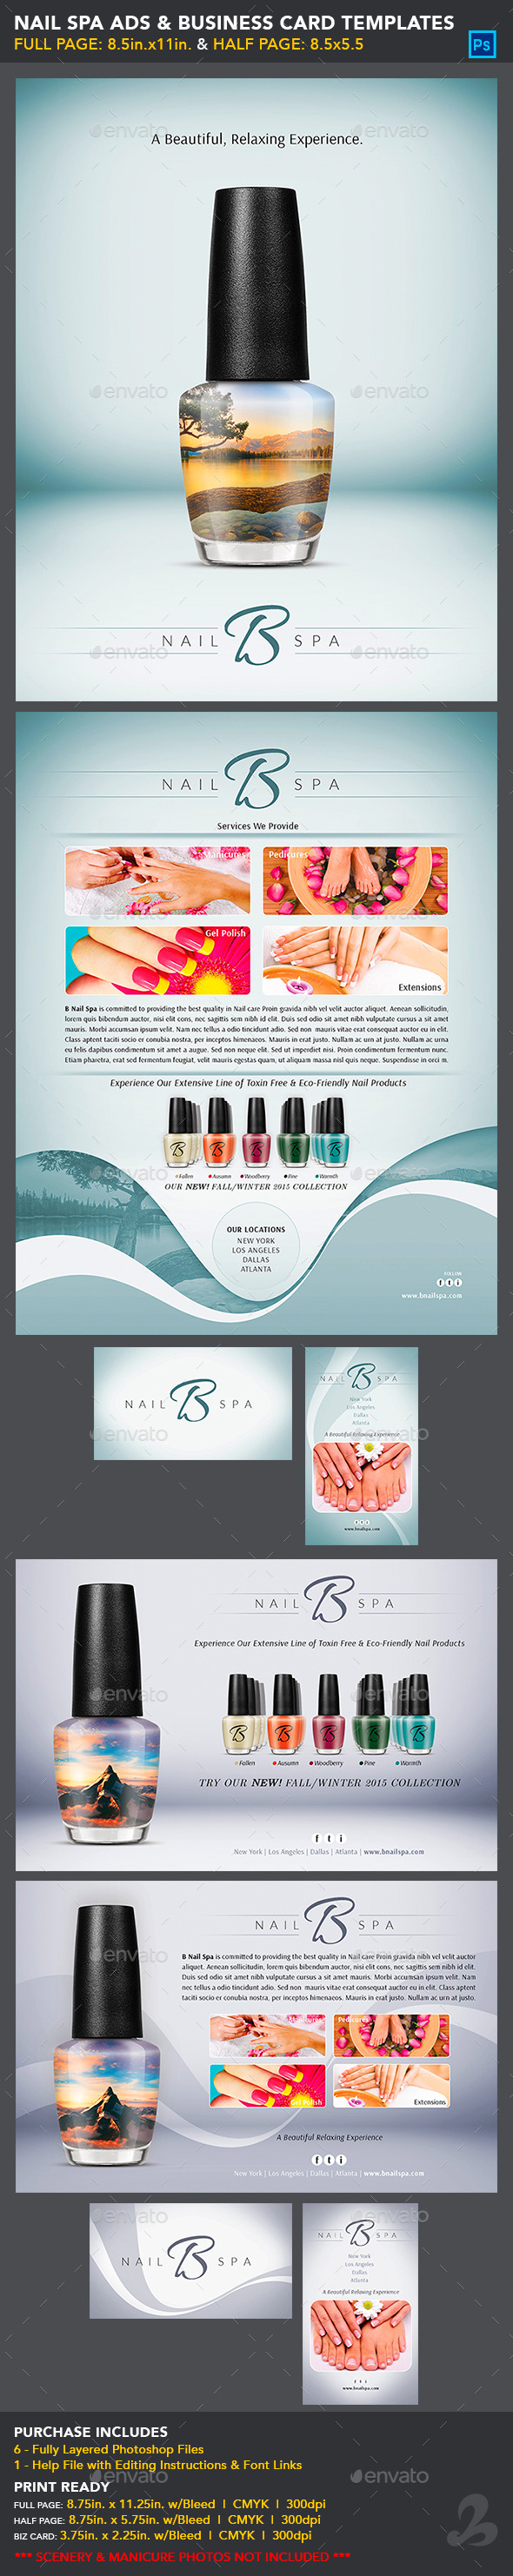 Nail Spa Ads & Business Card Templates - Commerce Flyers